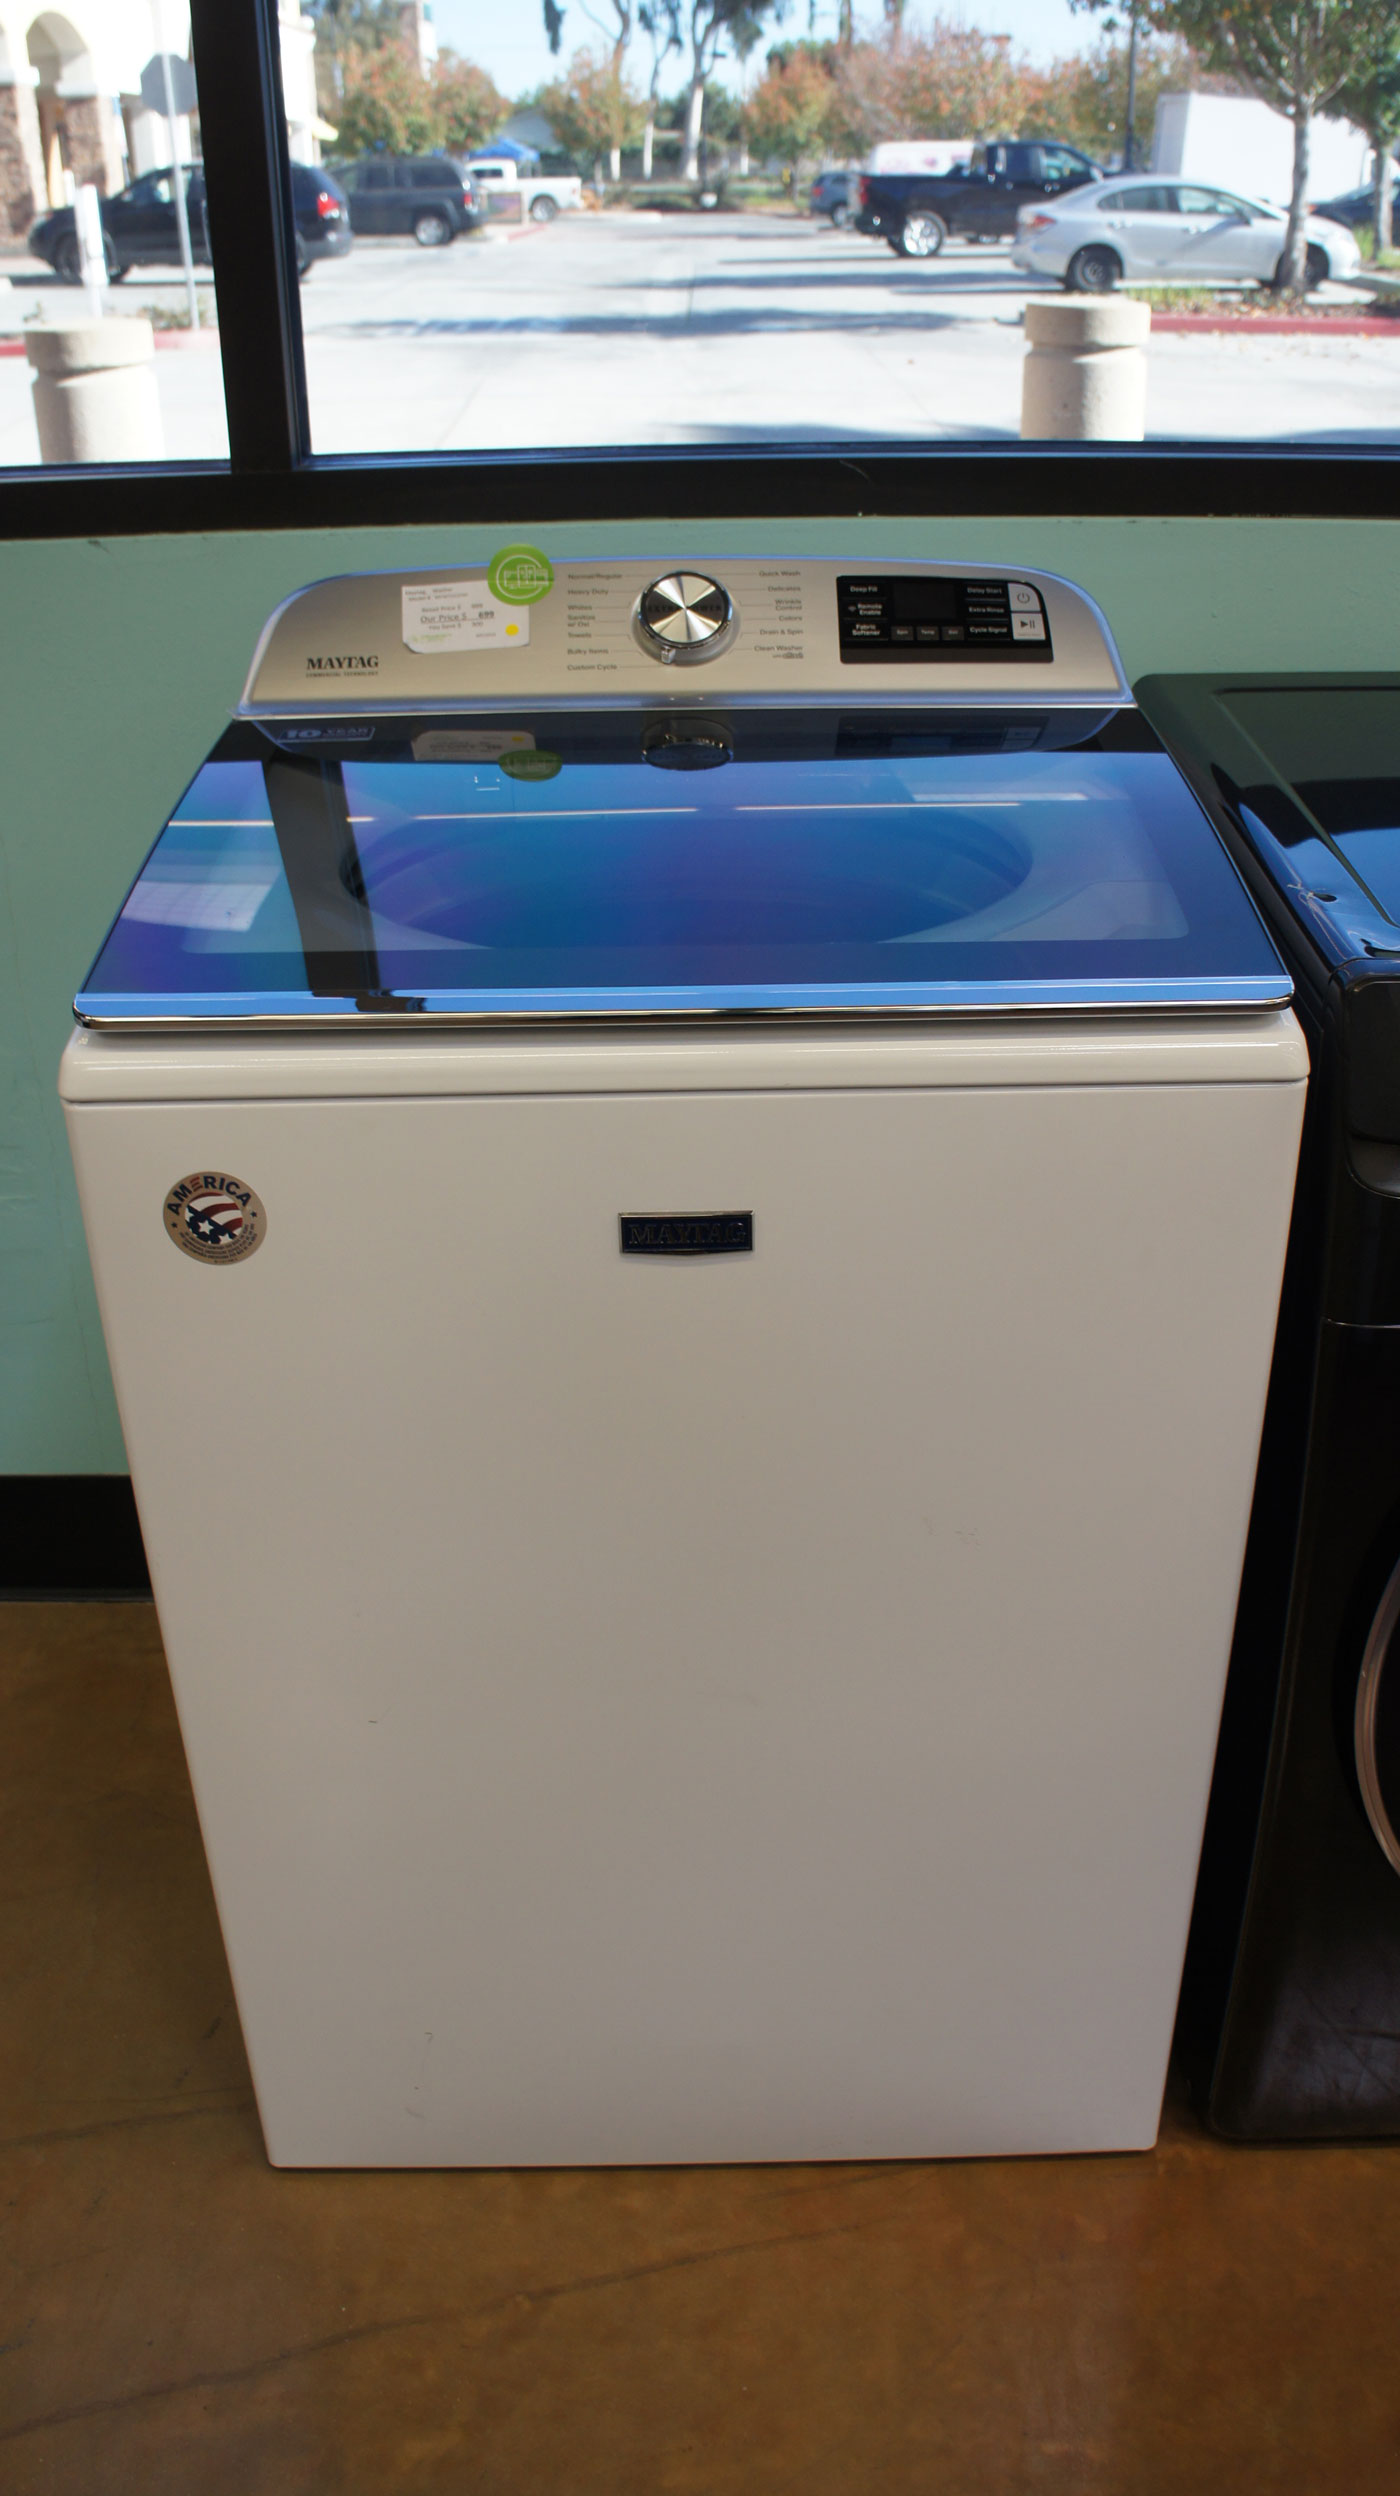 Maytag Top Load Smart Washer